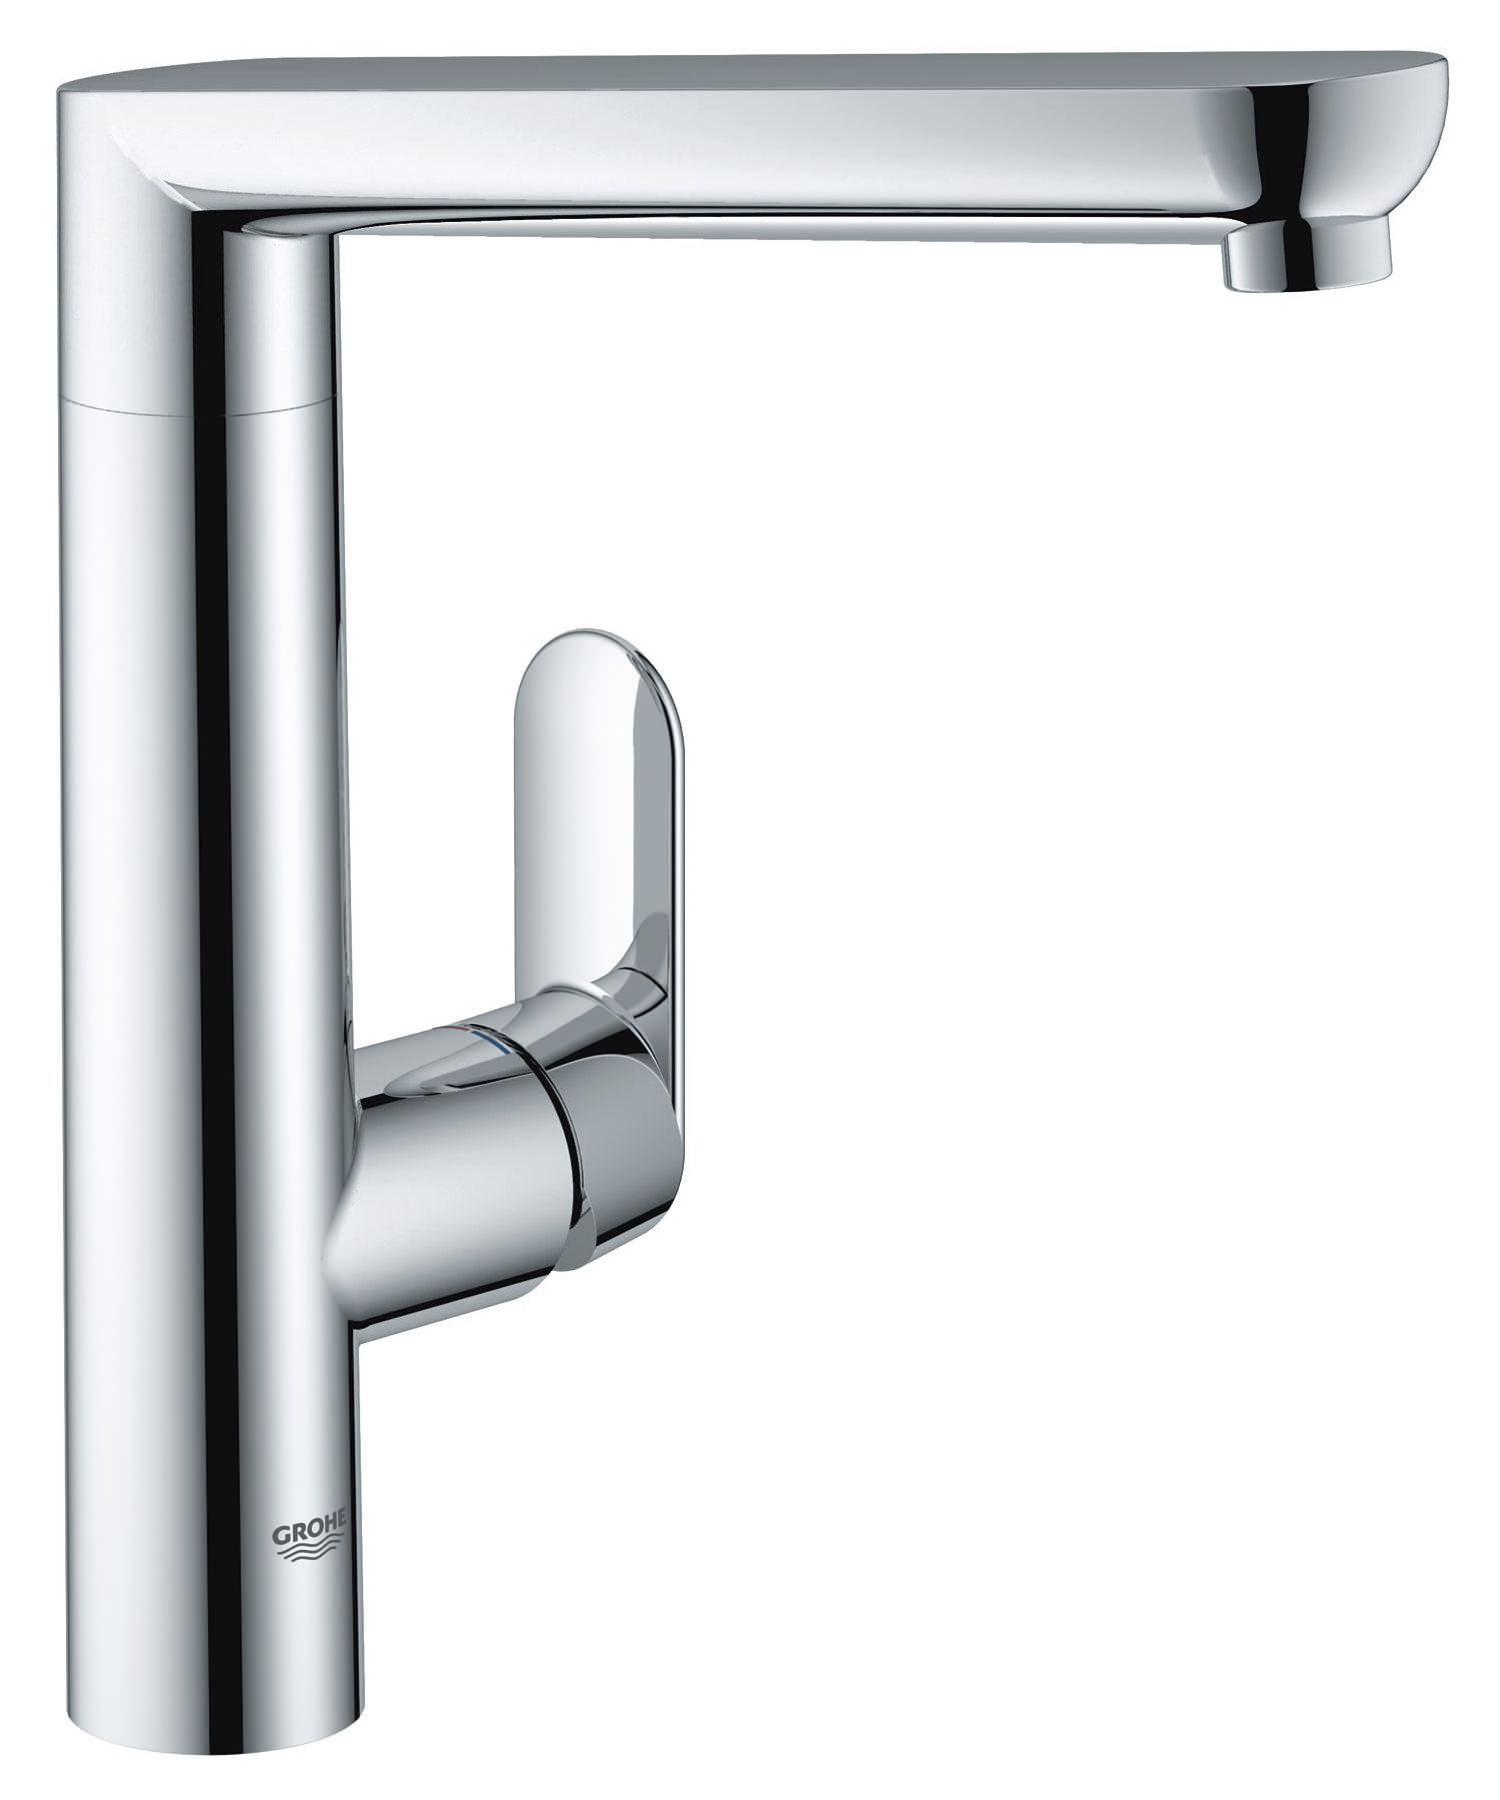 Grohe k7 monobloc chrome kitchen sink mixer tap 32175 000 for Bathroom taps